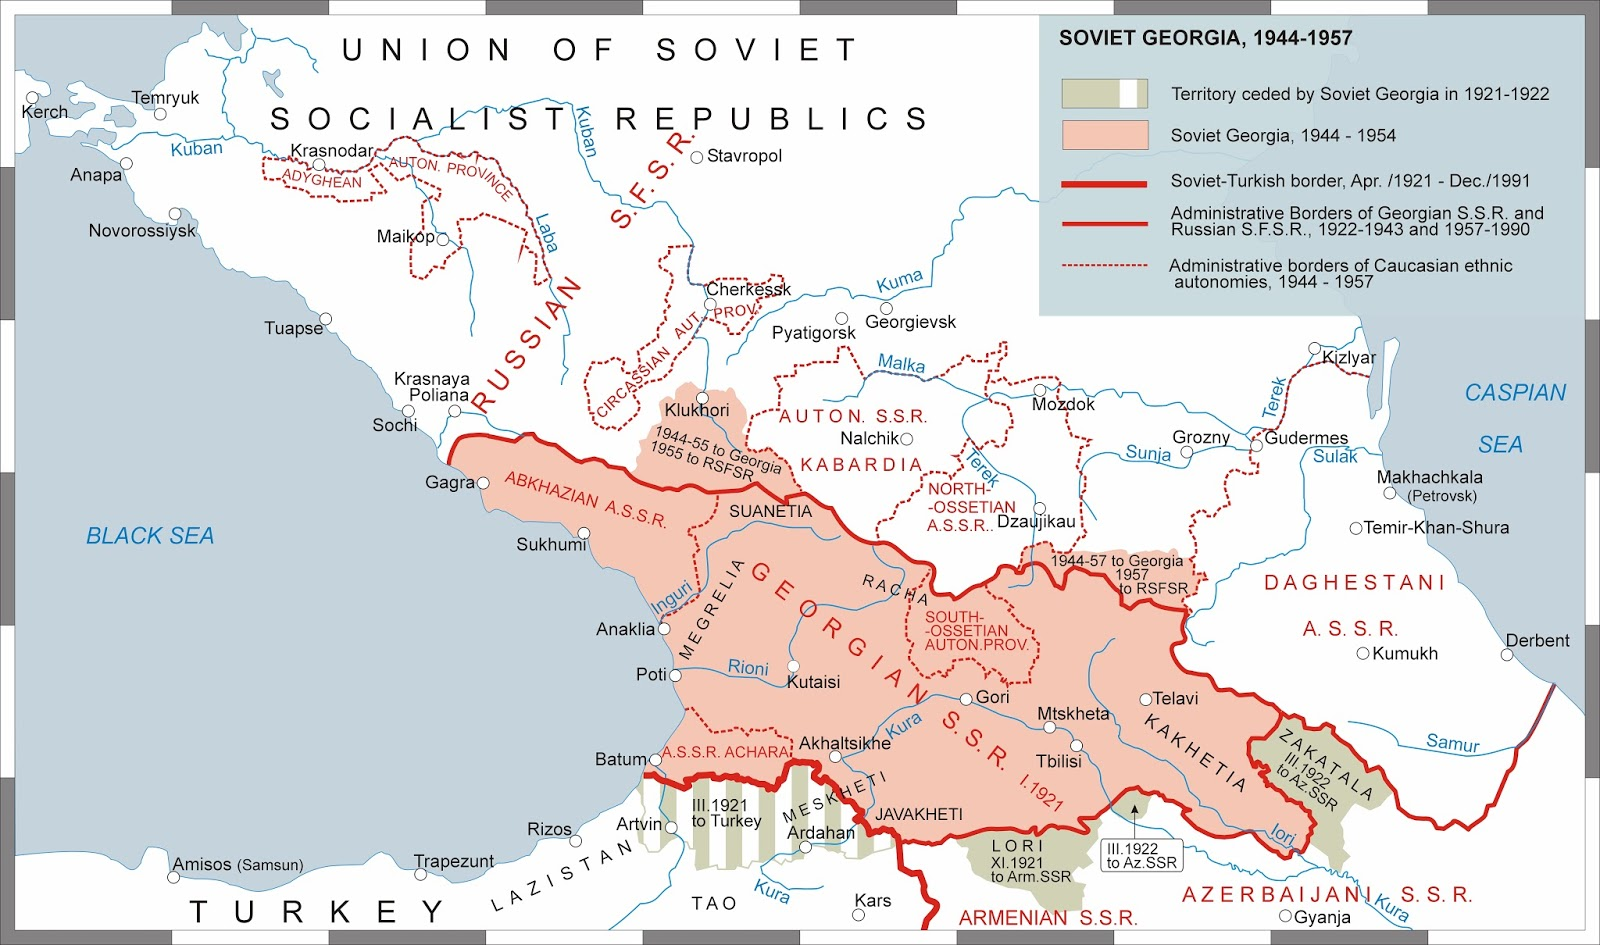 Soviet Georgia Map.Territorial Evolution Of Soviet Georgia 1600x945 Mapporn